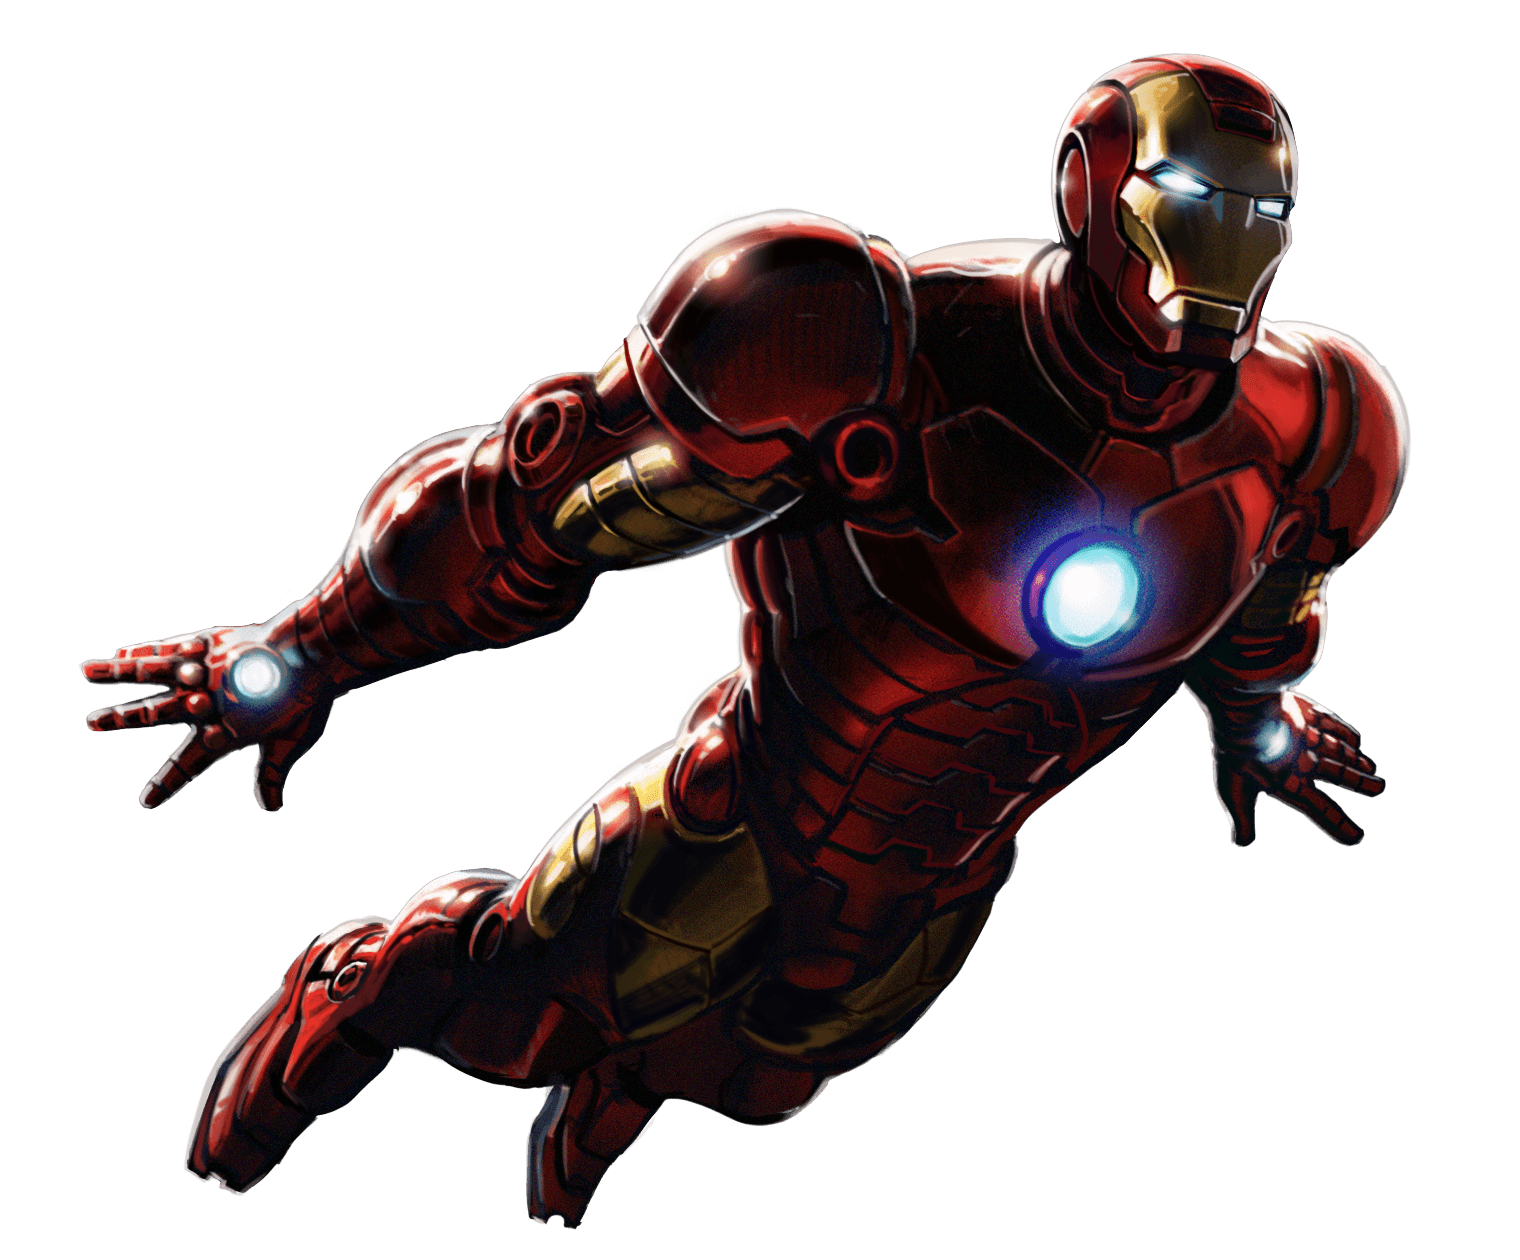 Download - Ironman HD PNG